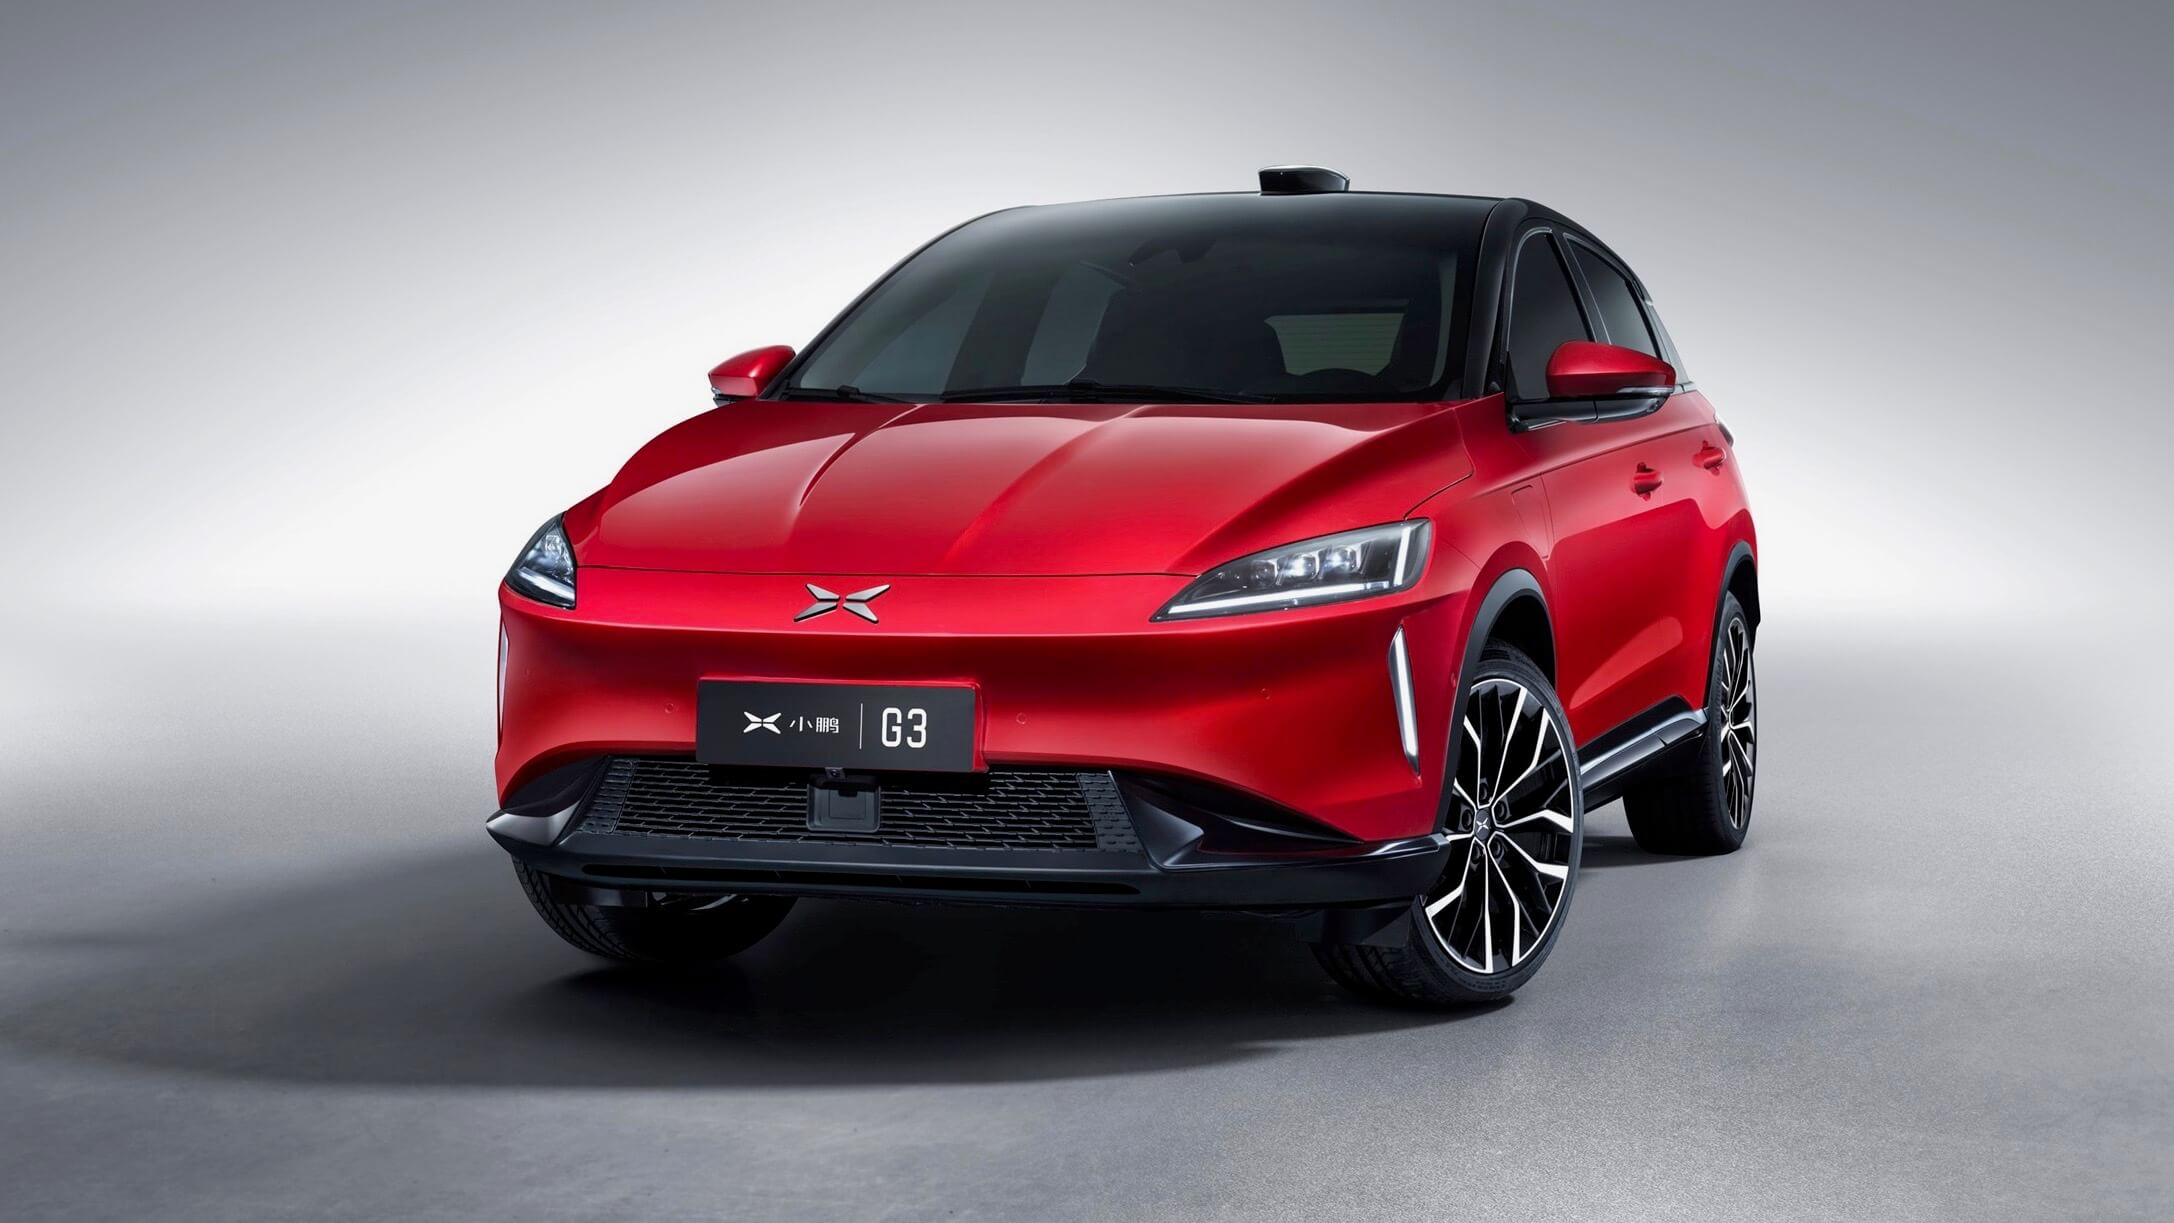 Xpeng G3 electric SUV